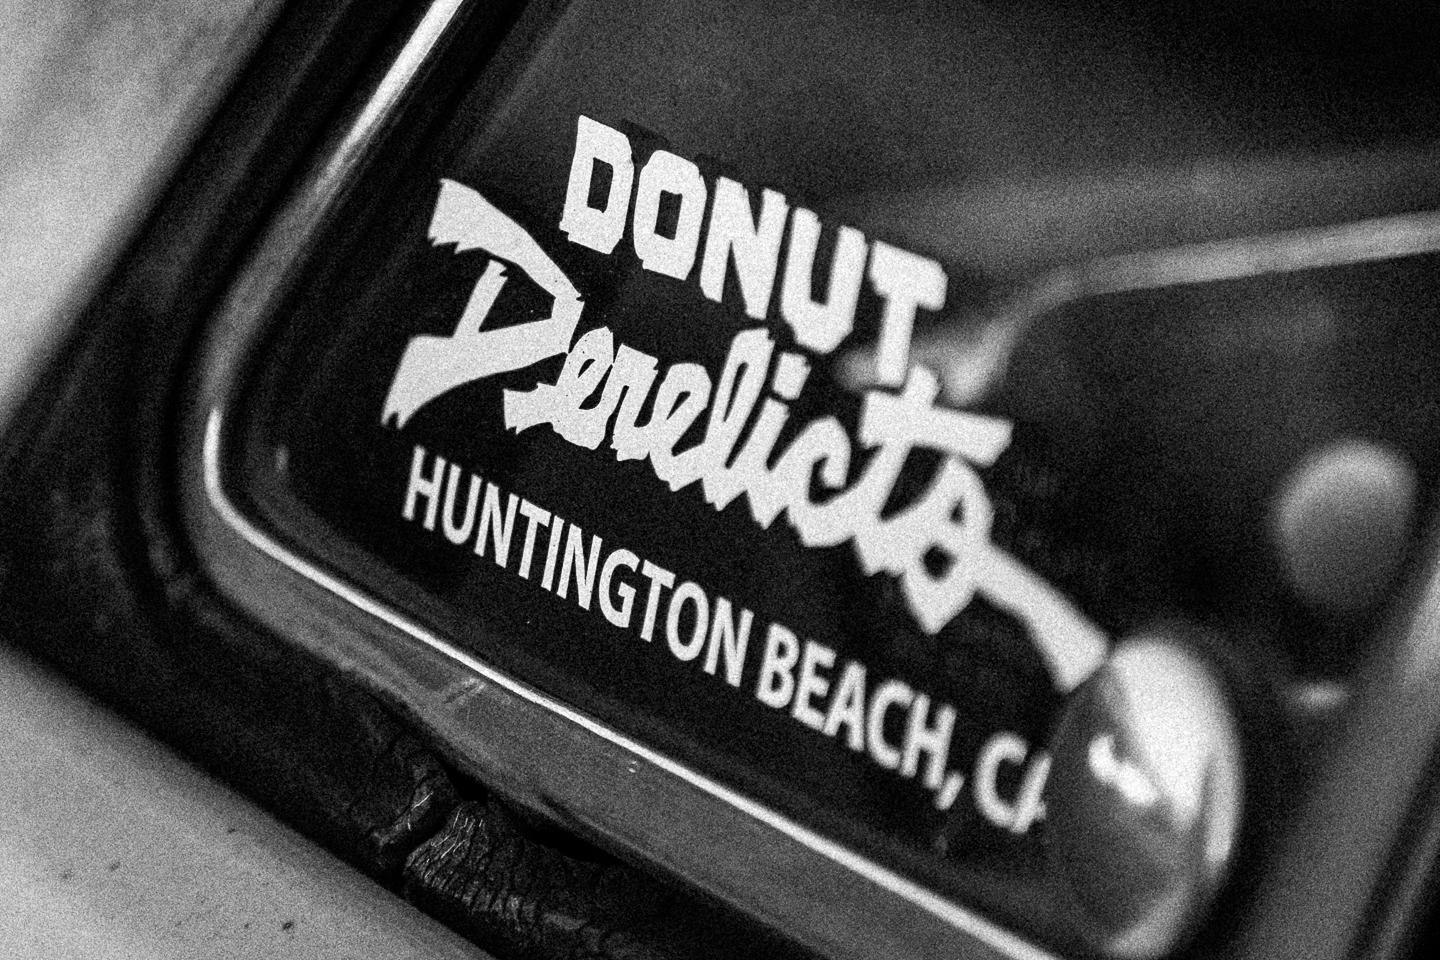 Donut Derelicts sticker